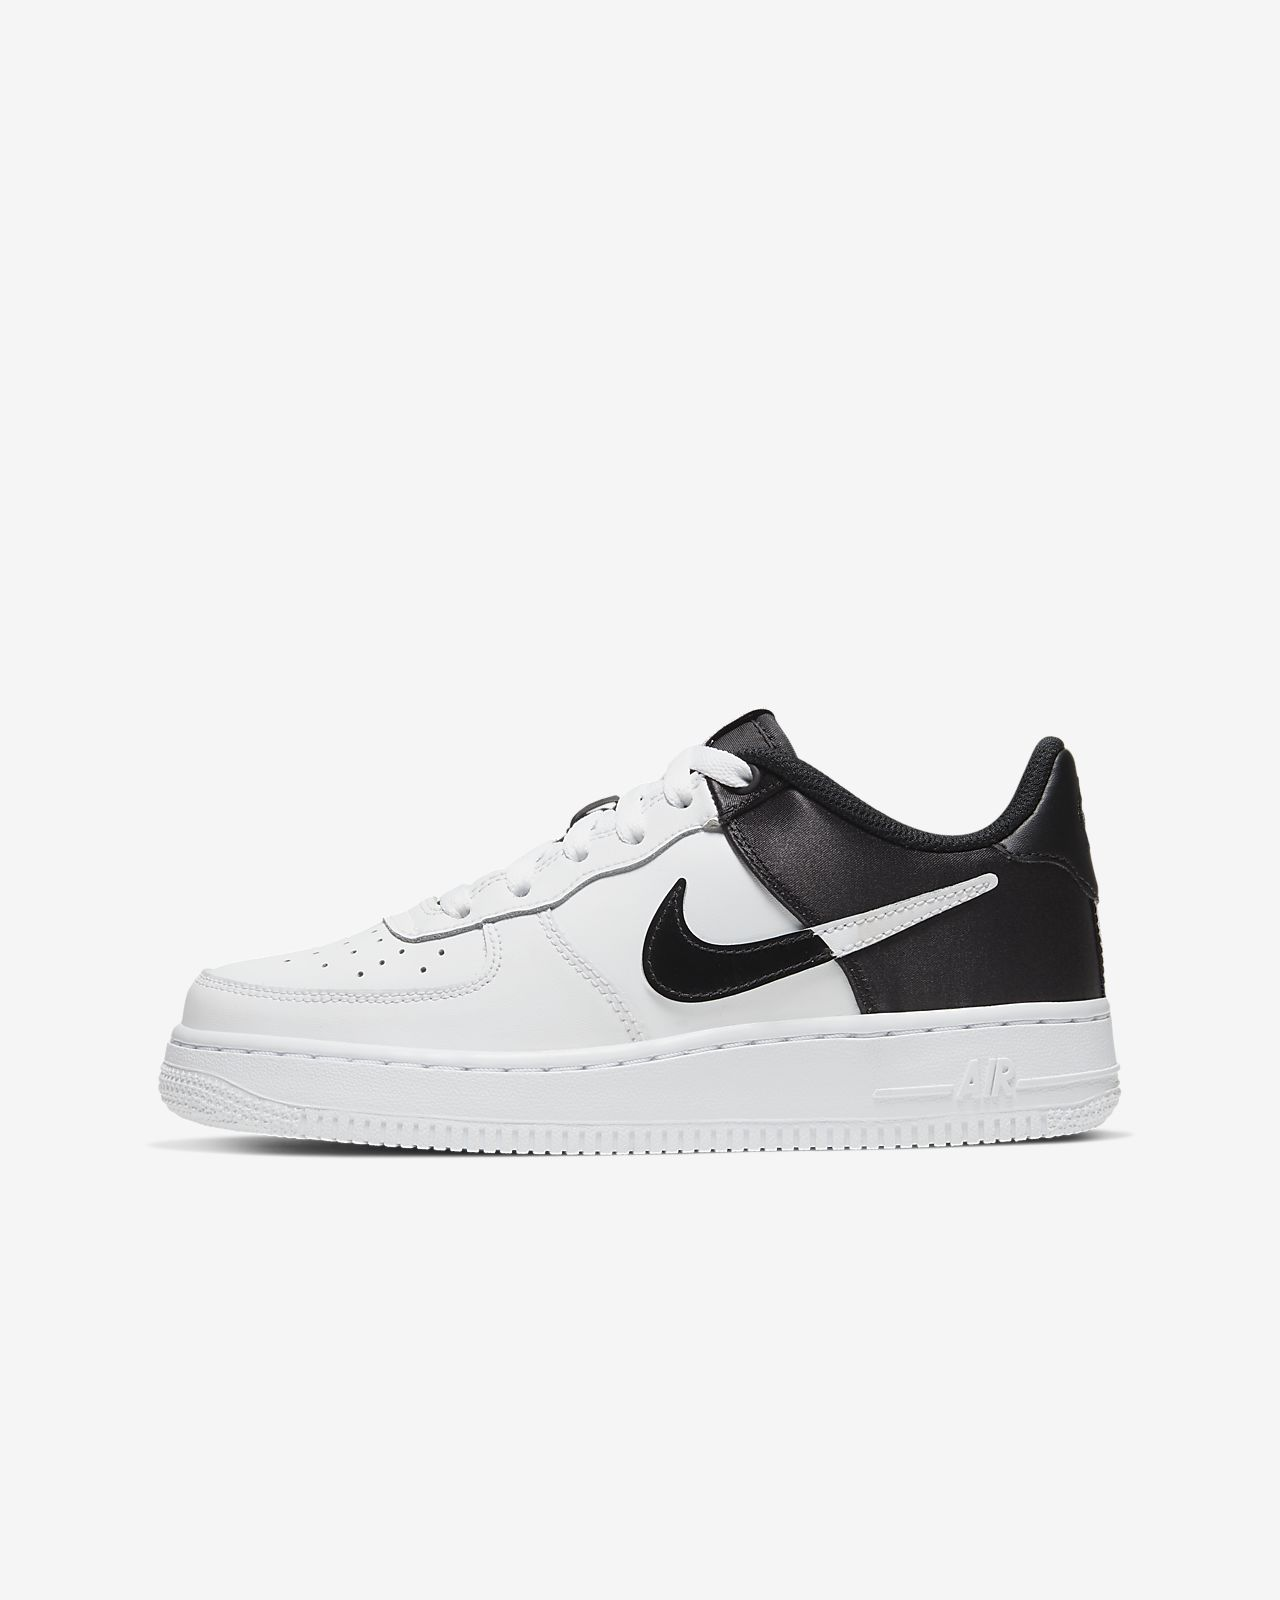 Sko Nike Air Force 1 NBA Low för ungdom